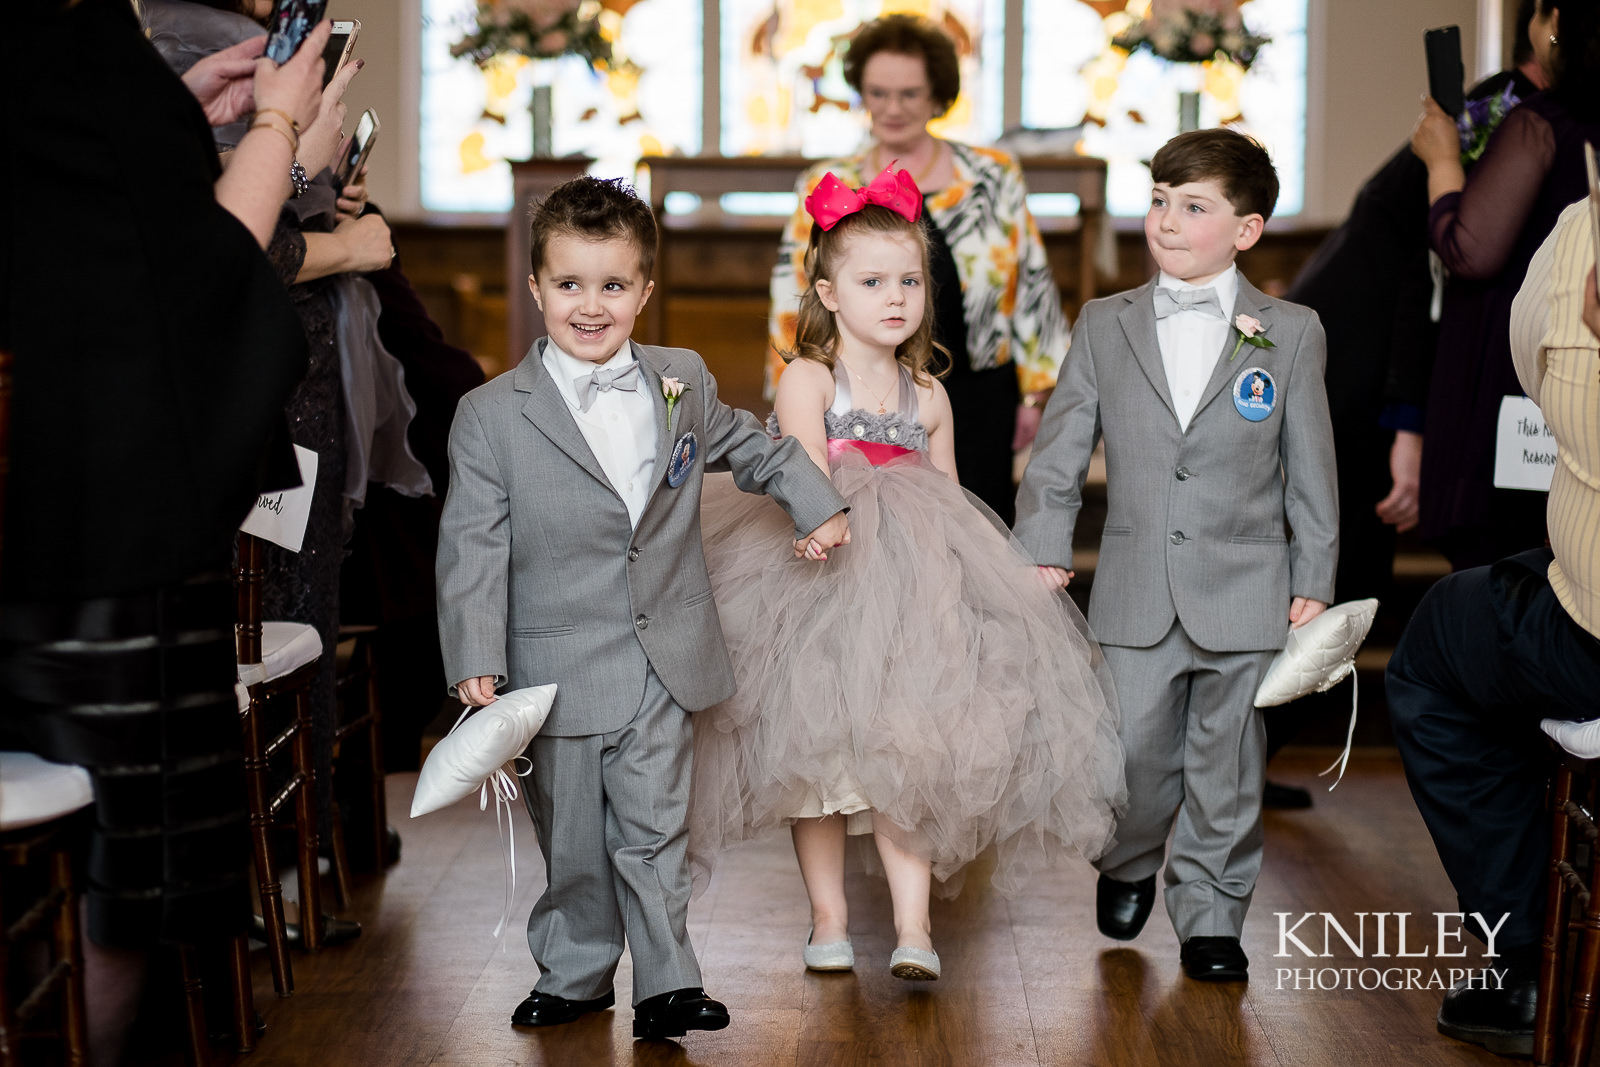 046 - Westminster Chapel - Rochester NY wedding photo - Kniley Photography.jpg